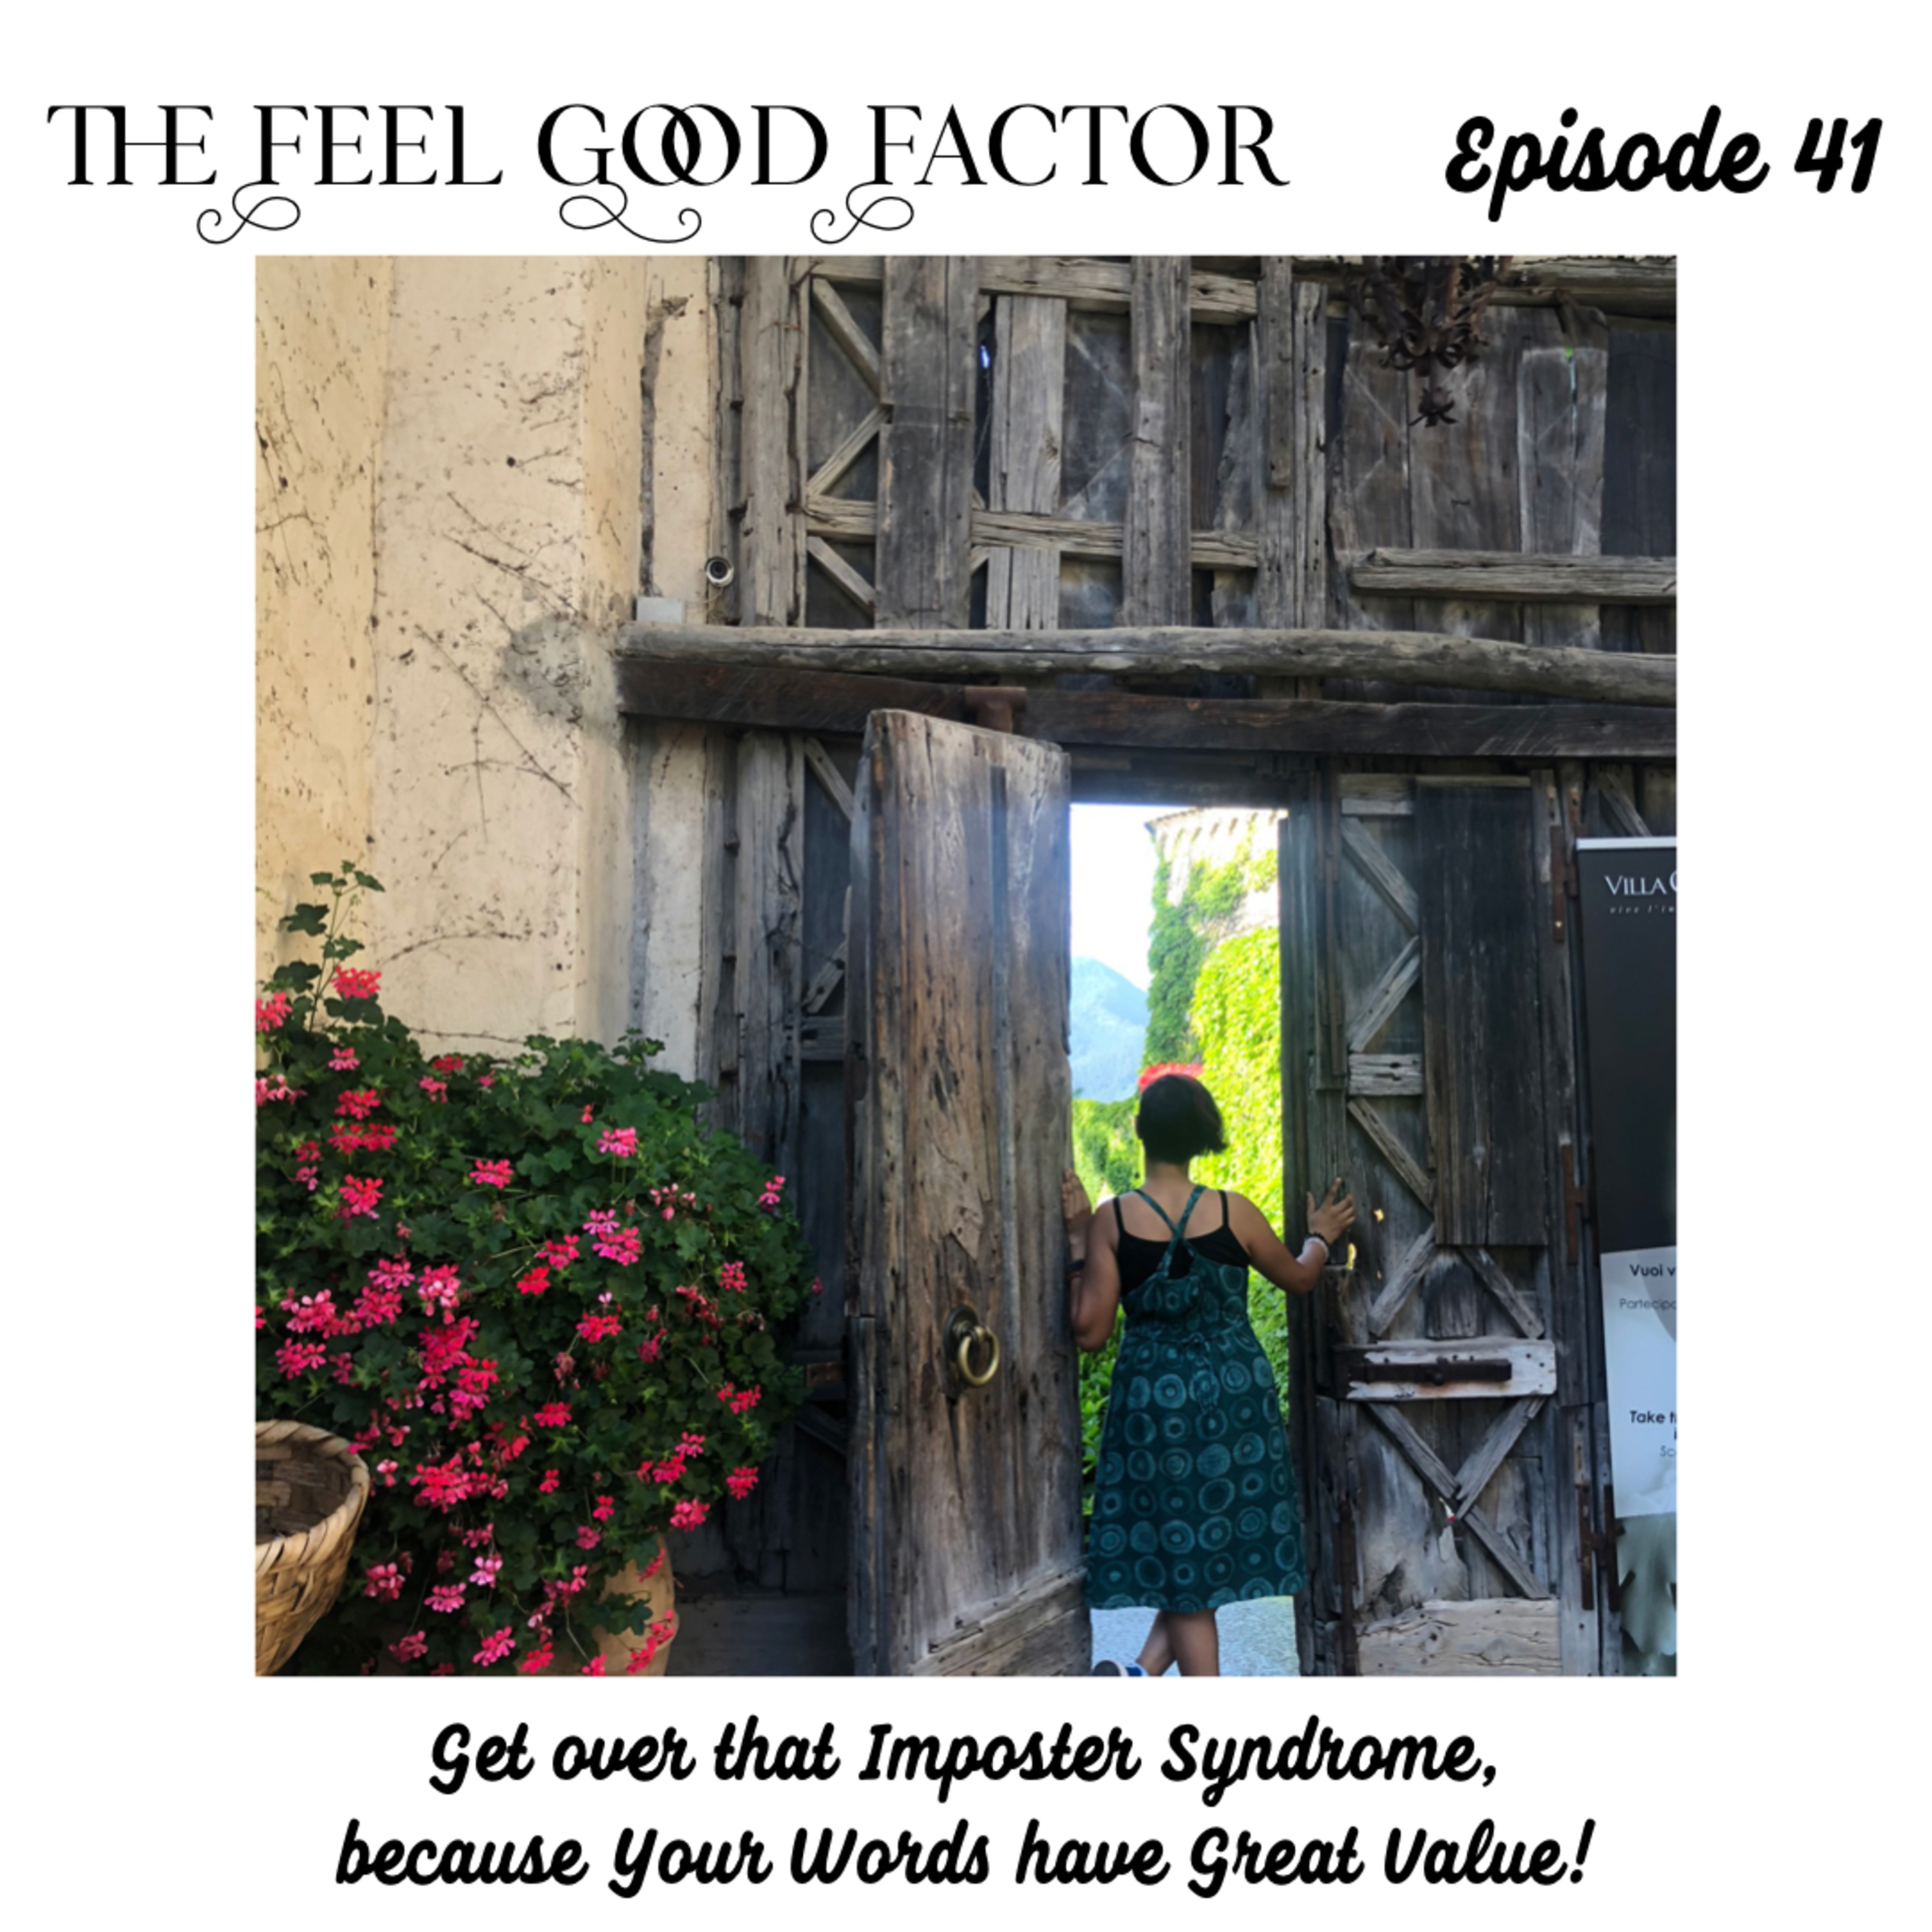 41: Get over that Imposter Syndrome, because Your Words have Great Value!